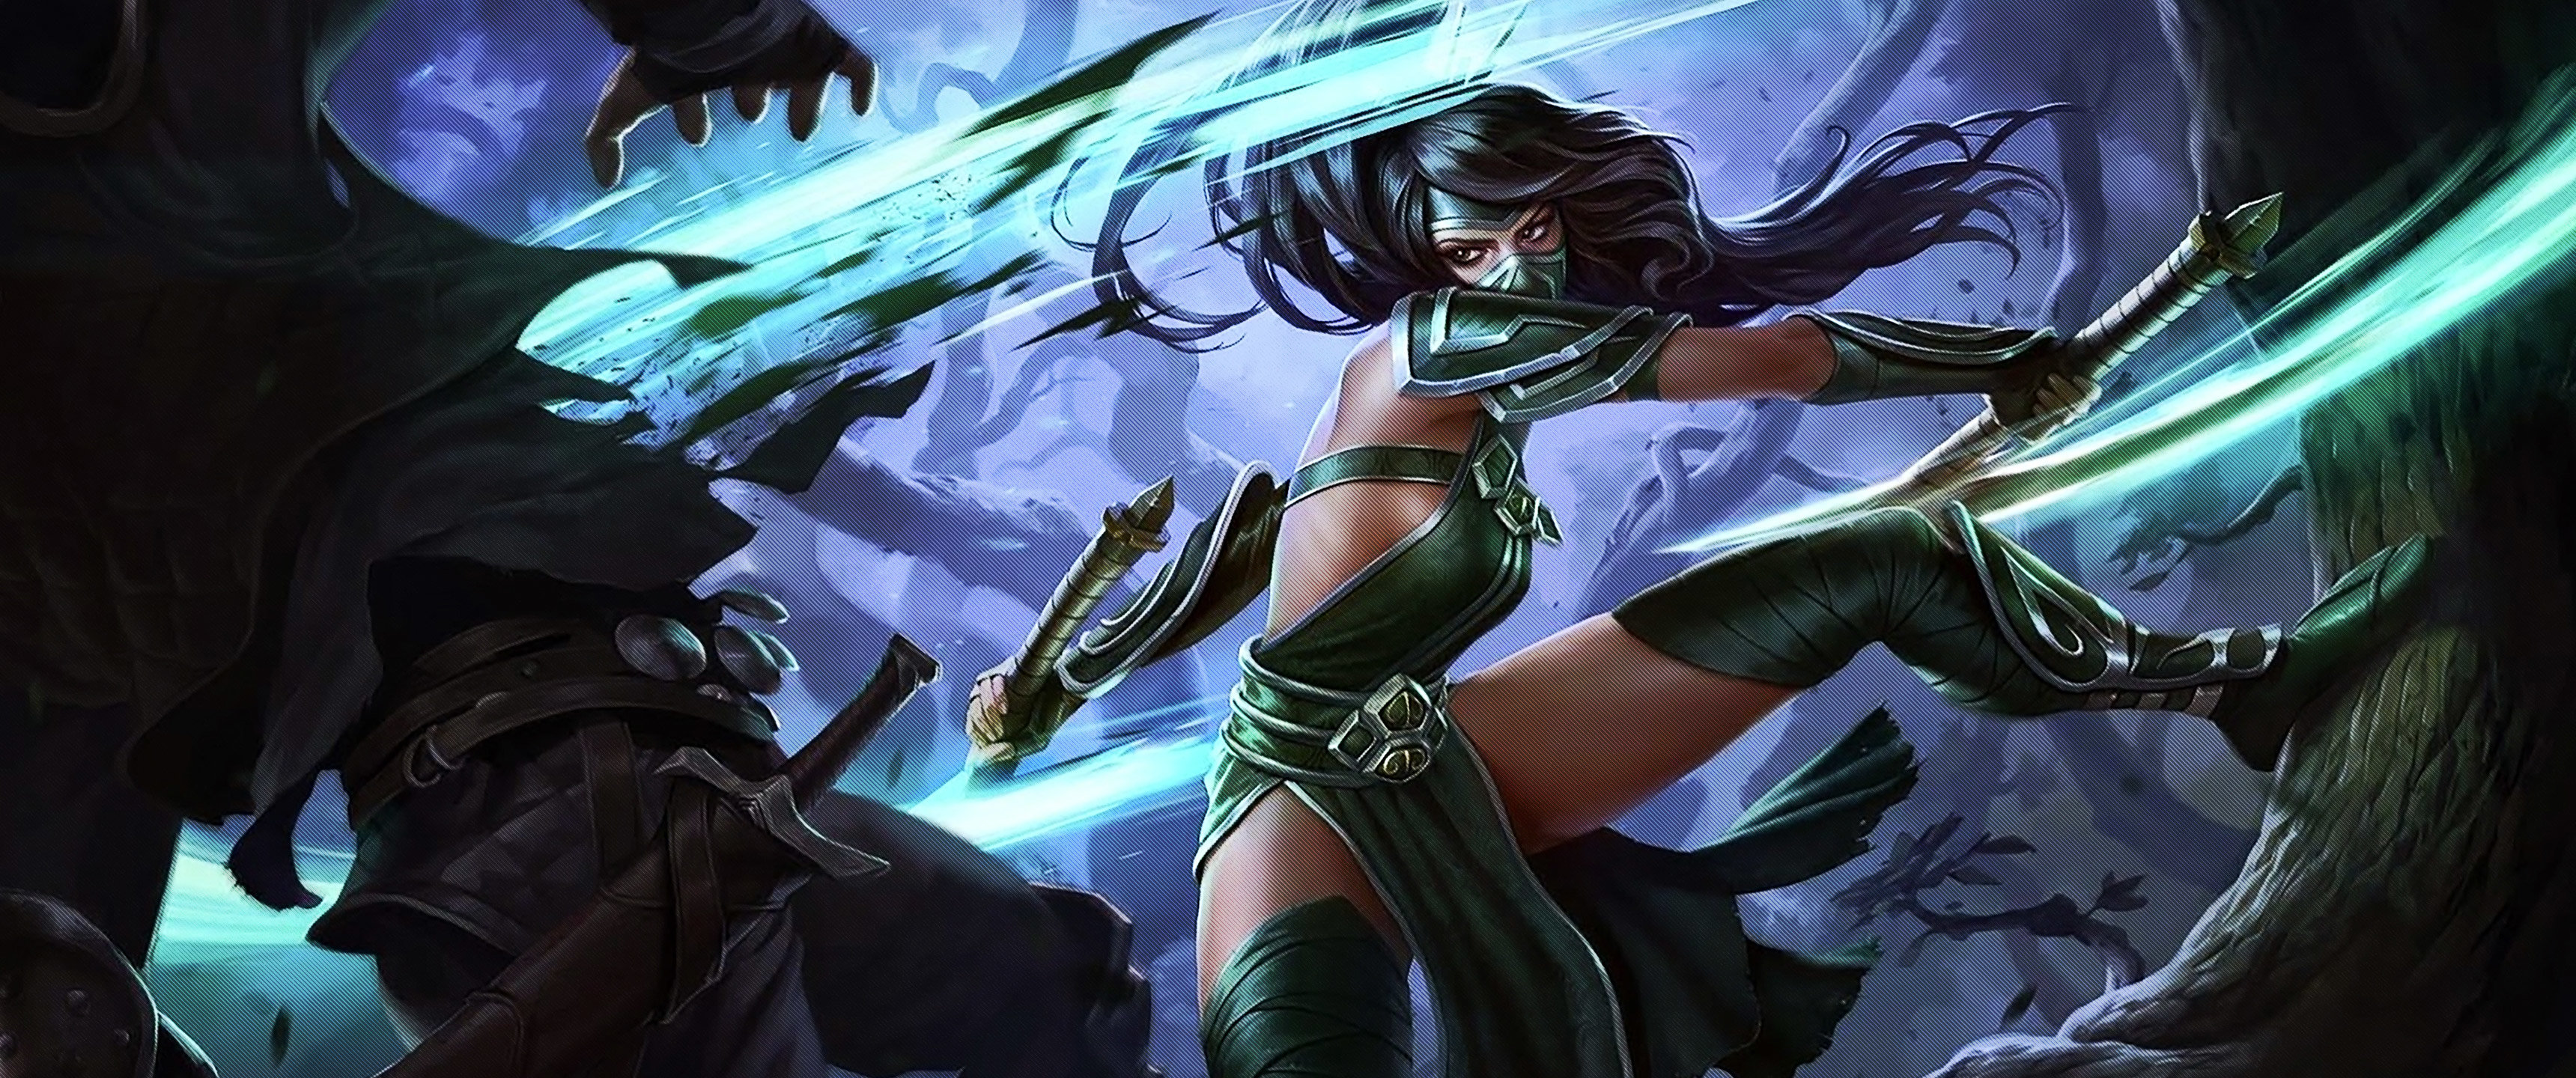 Free download Akali (League Of Legends) background ID:171527 hd 3440x1440 for desktop